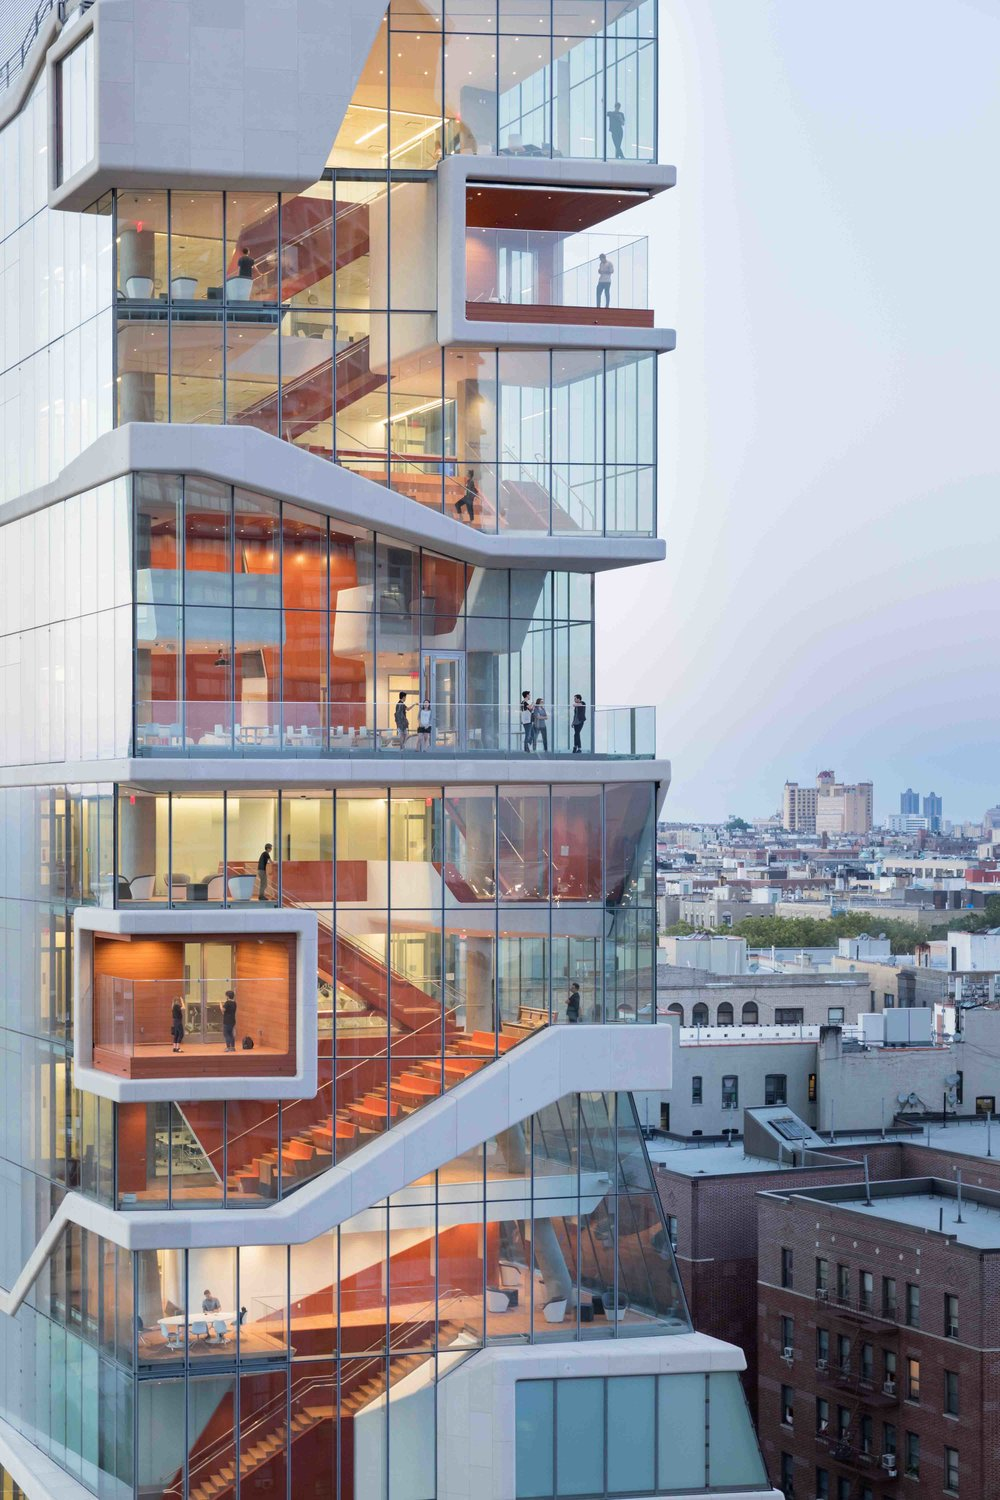 Structural engineers are key contributors to cutting-edge buildings like the Vagelos Education Center in NYC.